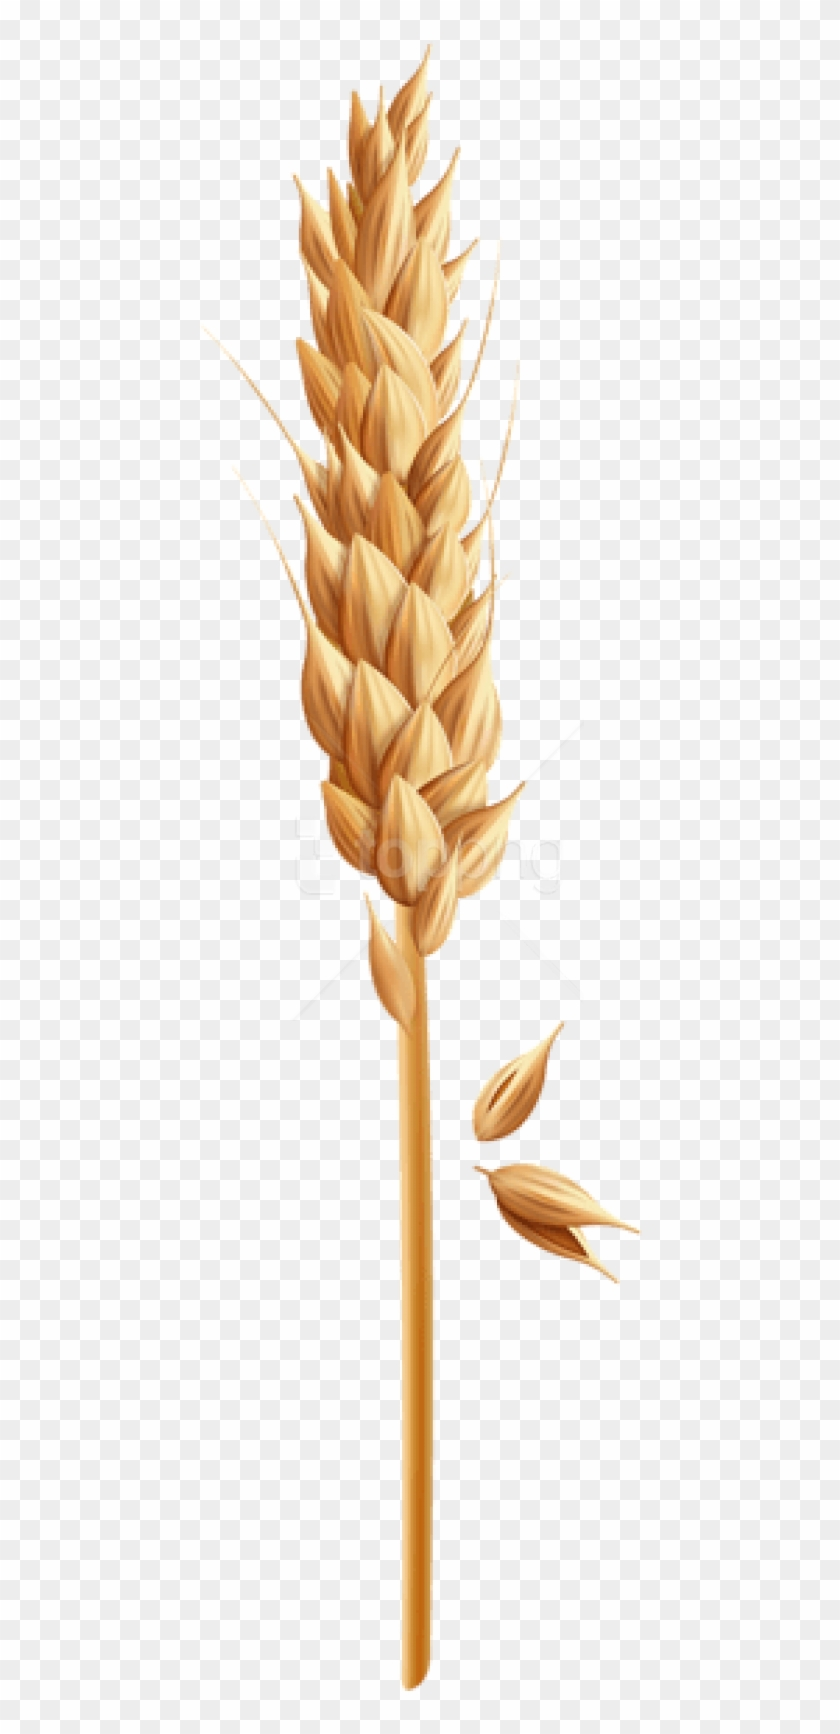 Free Png Download Wheat Grain Clipart Png Photo Png.